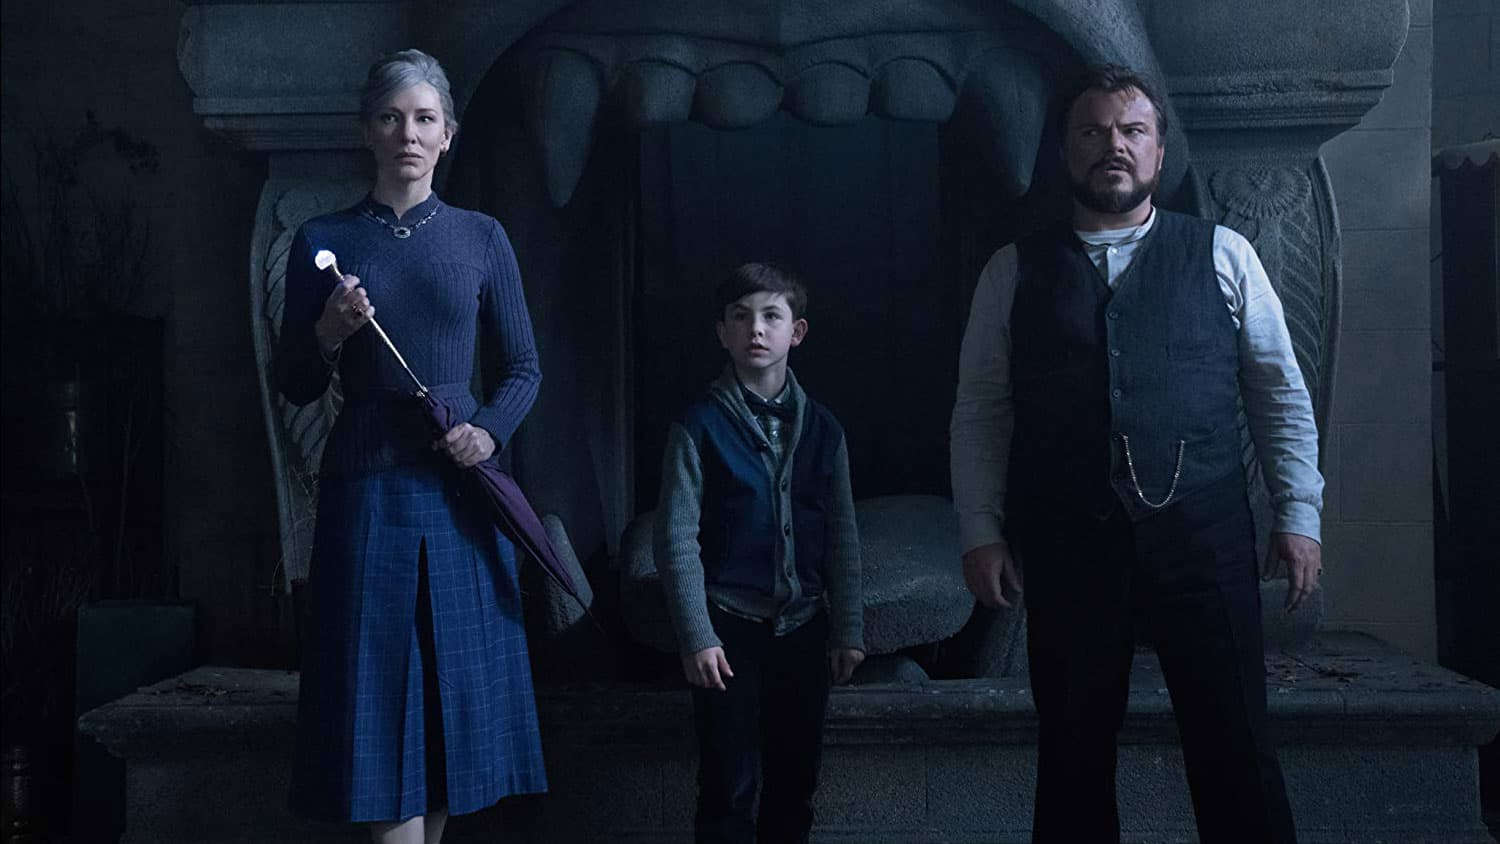 The House With A Clock In Its Walls Review – Can You Hear The Ticking? - OC Movie Reviews - Movie Reviews, Movie News, Documentary Reviews, Short Films, Short Film Reviews, Trailers, Movie Trailers, Interviews, film reviews, film news, hollywood, indie films, documentaries